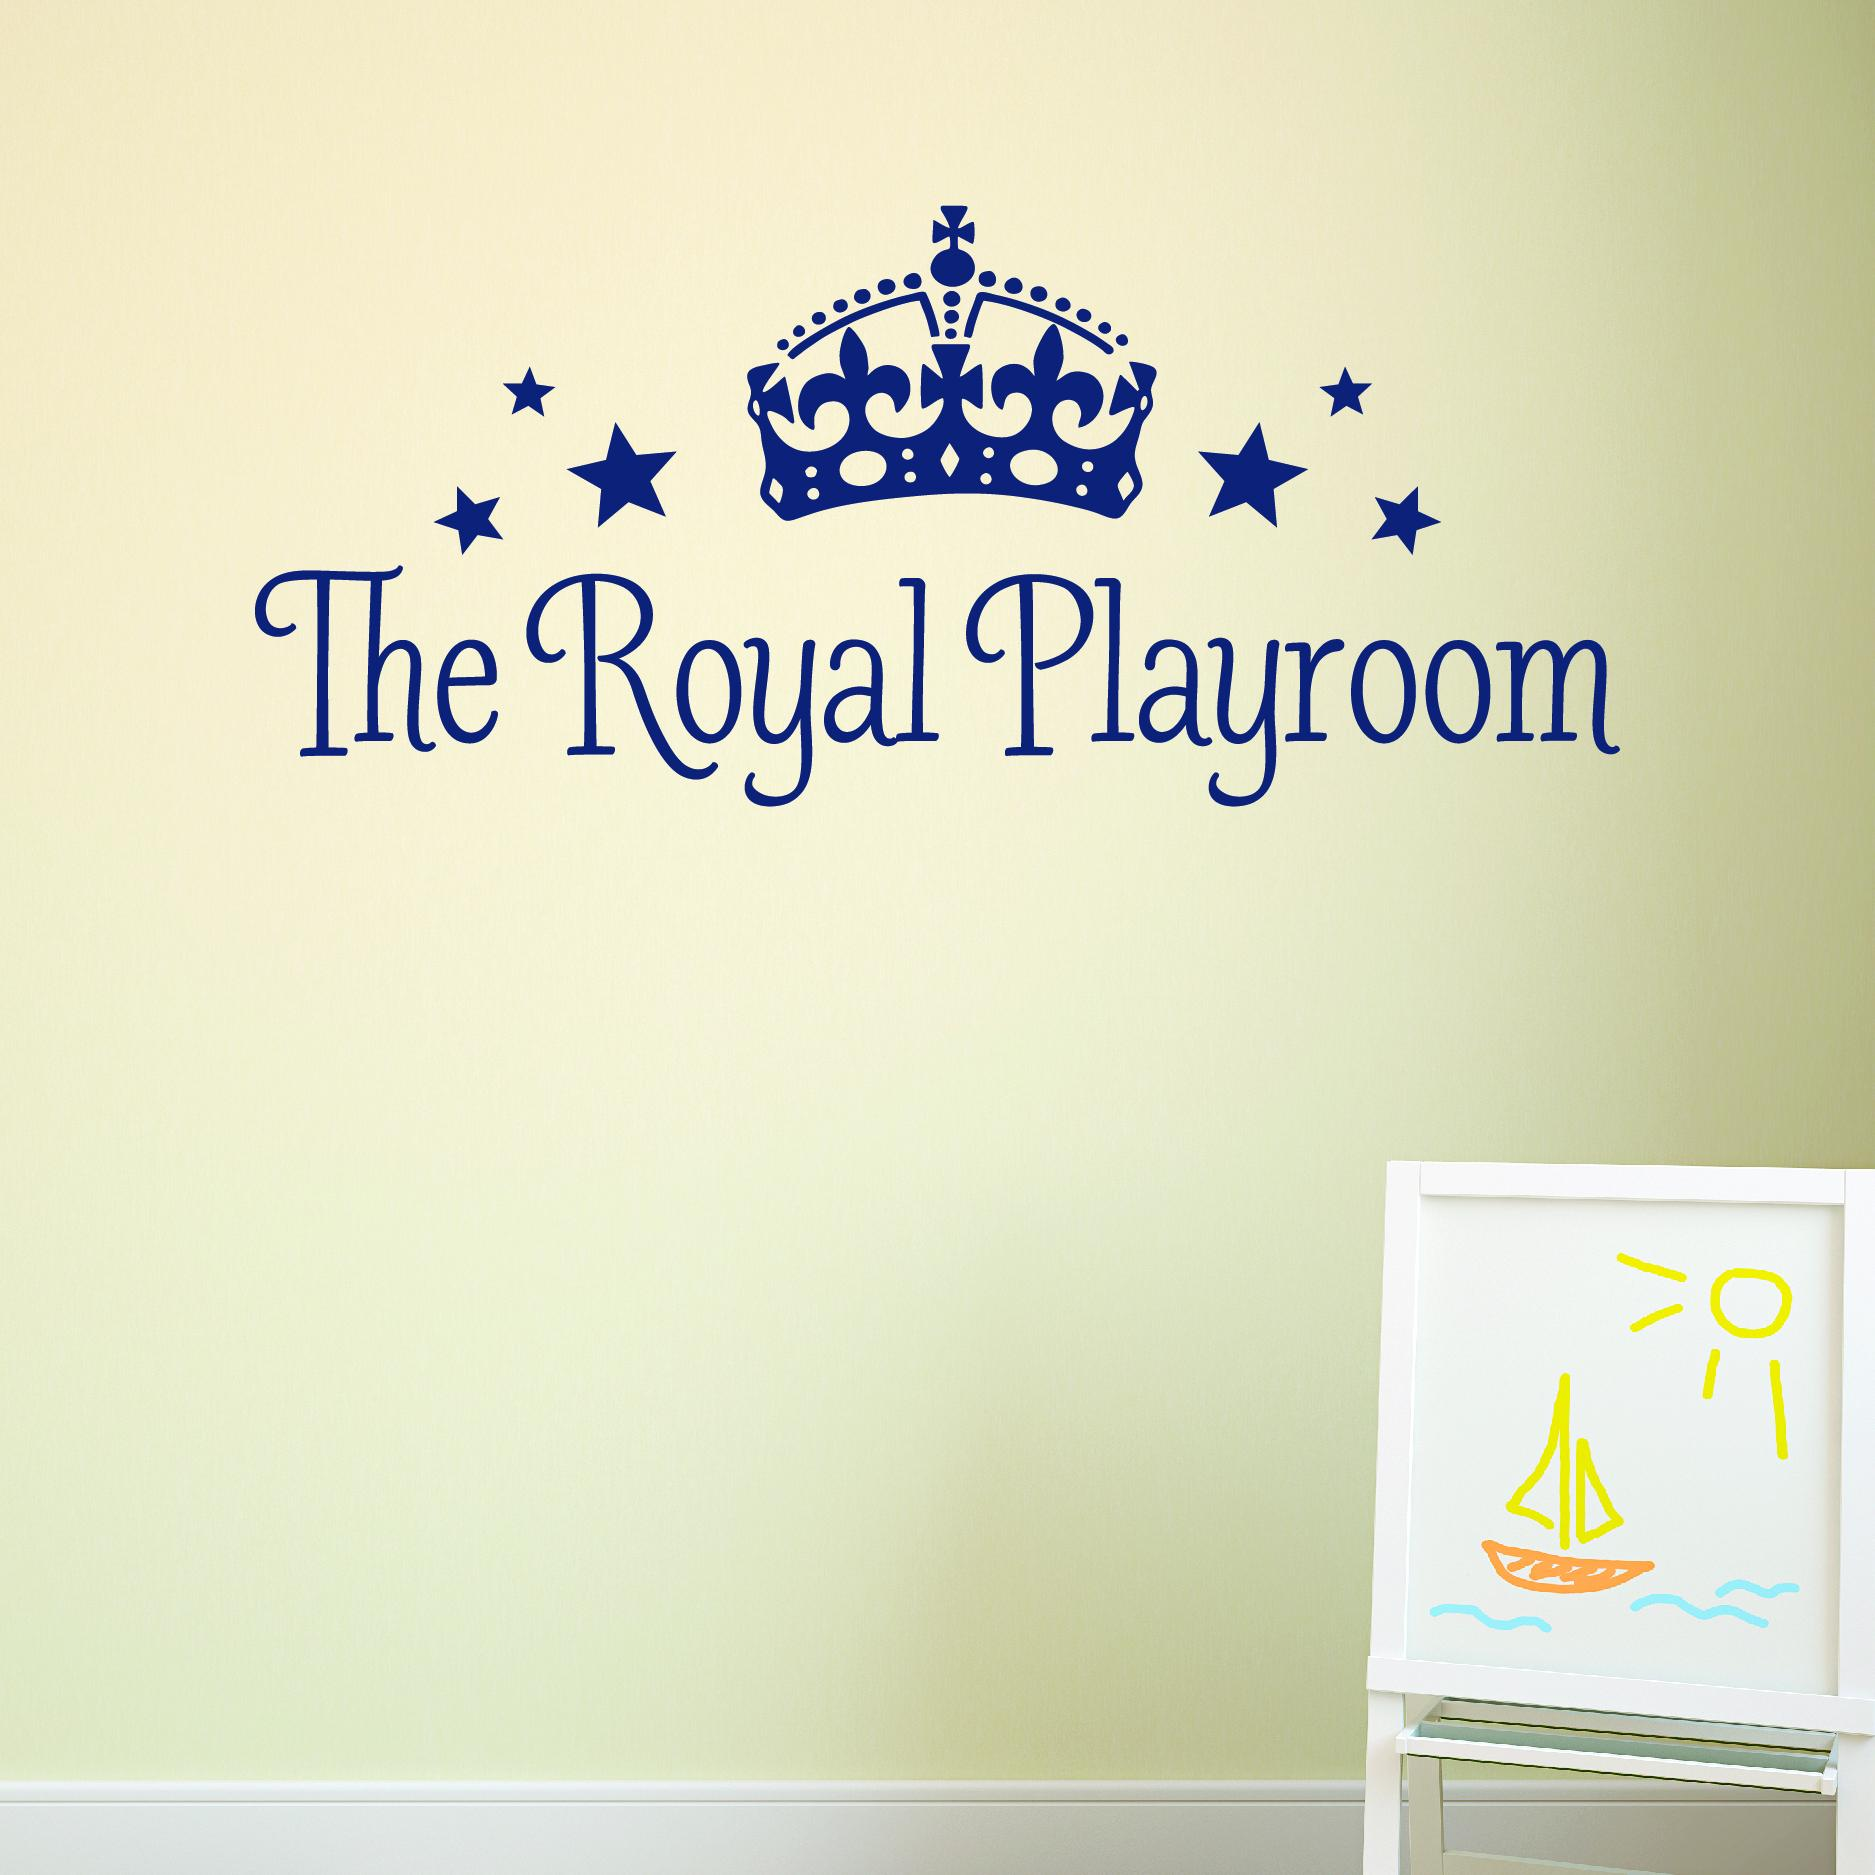 The Royal Playroom Wall Quotes Decal Wallquotes Com